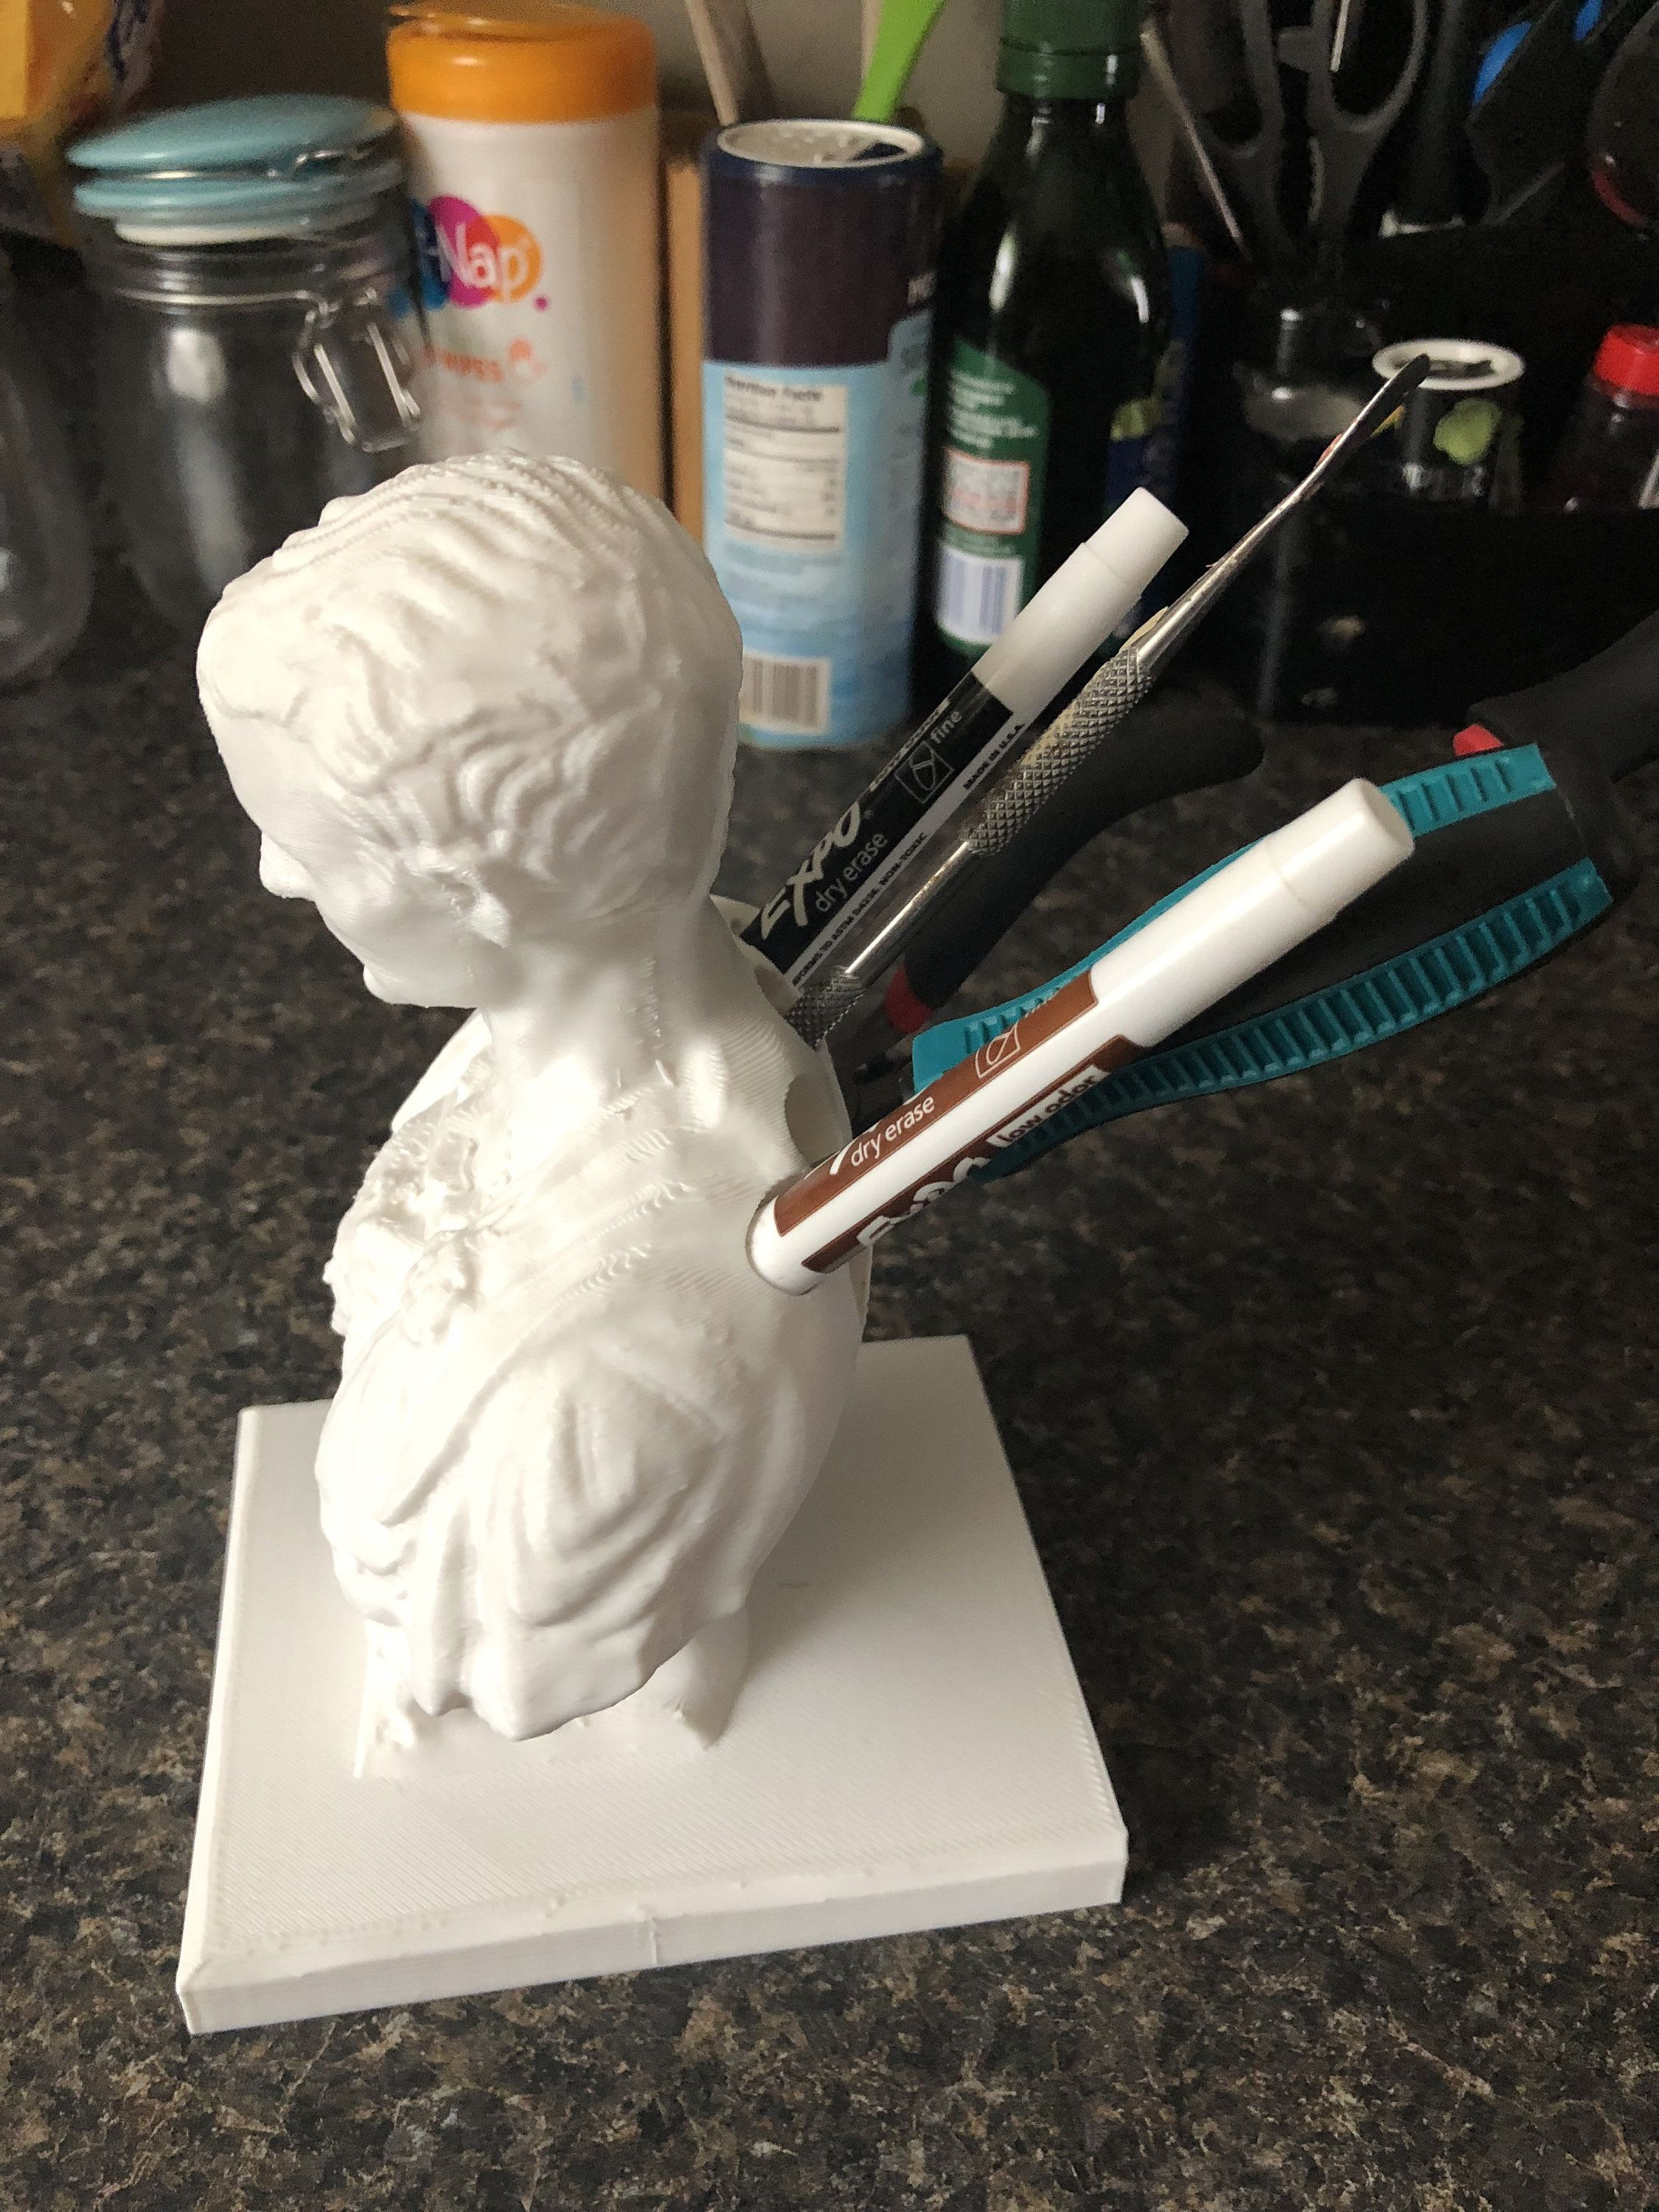 Julius Caesar Pencil Holder Amusing Julius Caesar Pencil Holder  Pen Holder  Apple Pencil Holder Design Inspiration